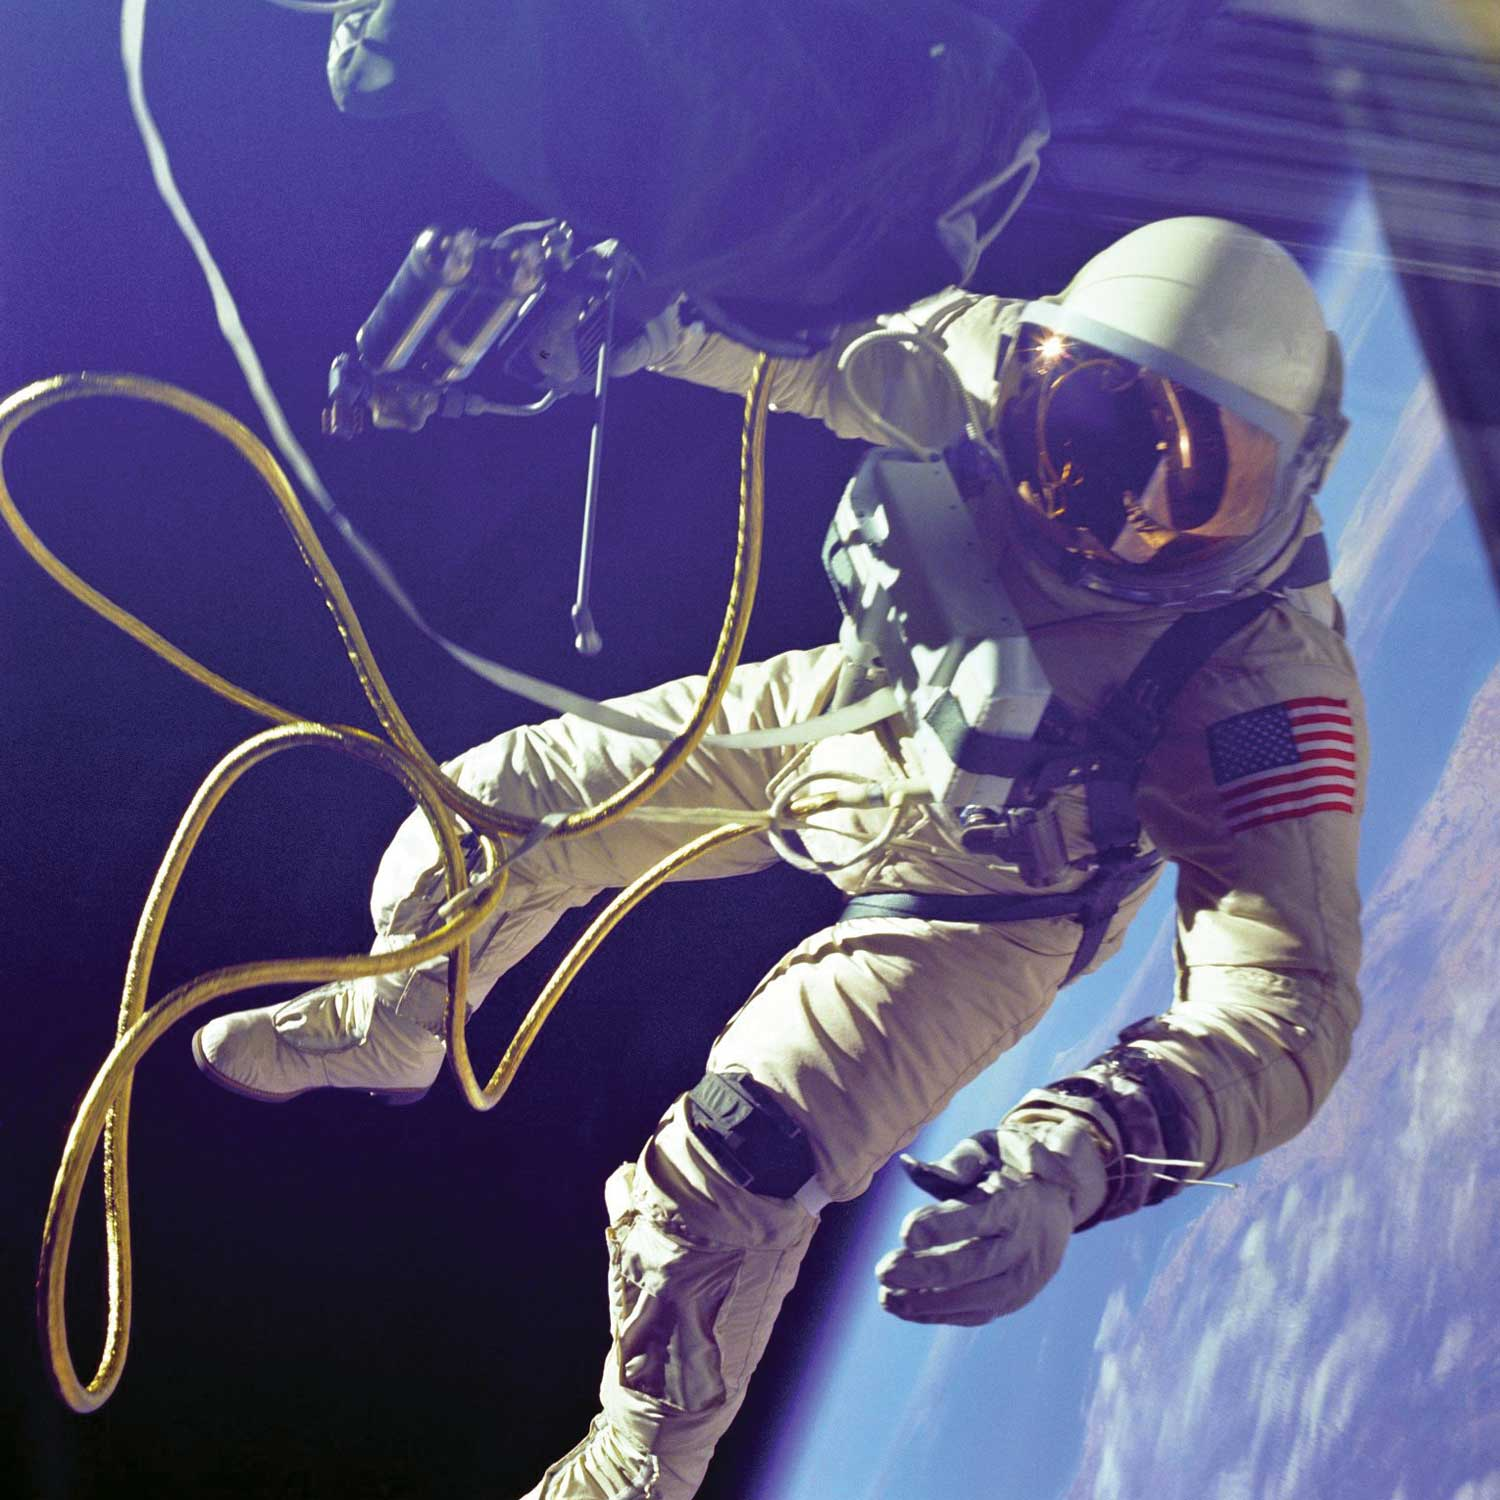 The watches are fitted with breakable Velcro straps to ensure it won't trap an astronaut's arm in case of any mishaps